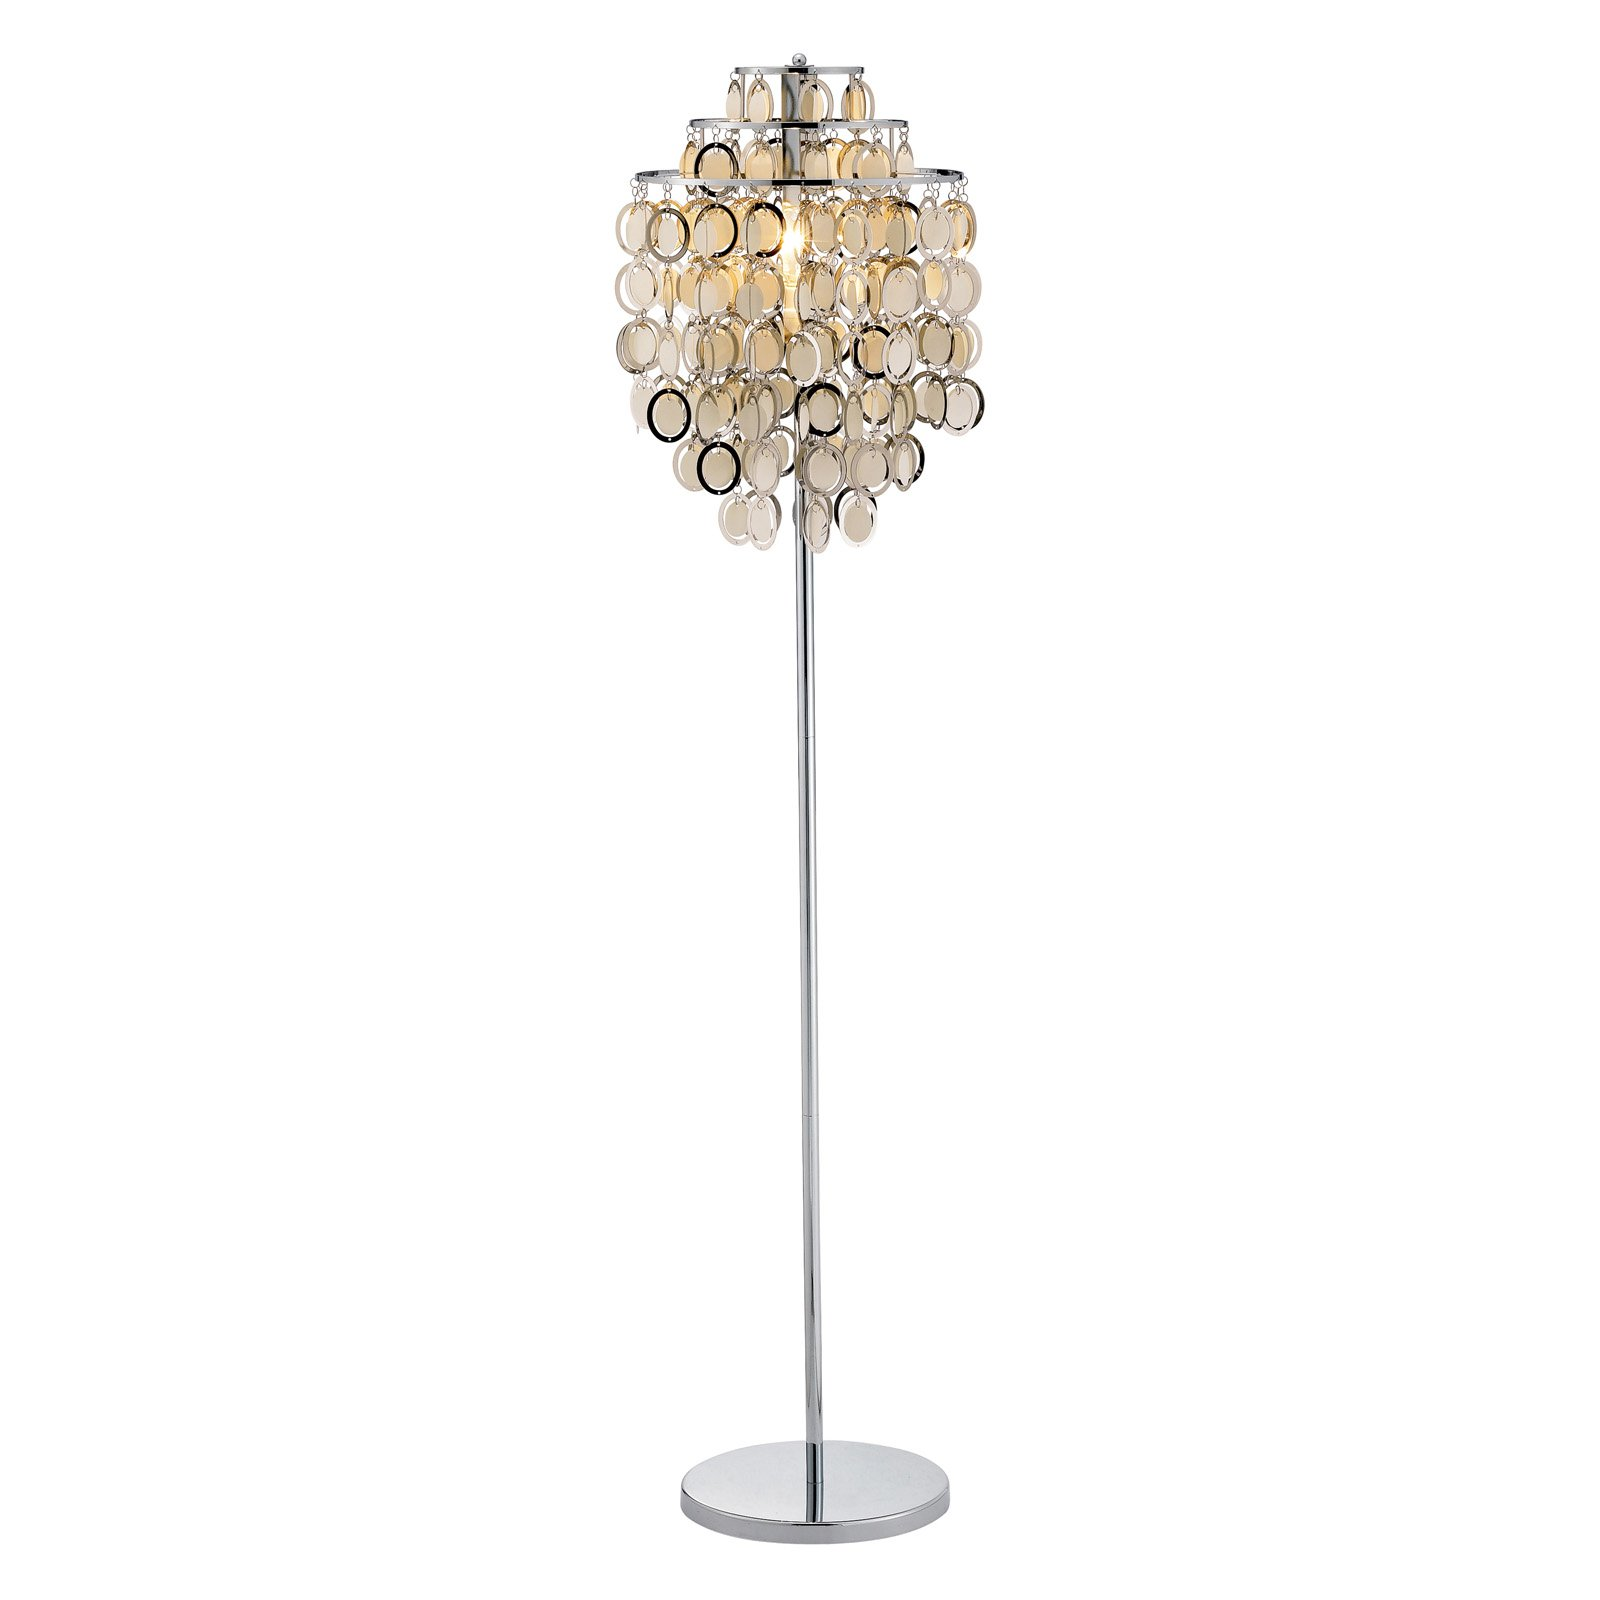 Adesso Shimmy Floor Lamp, Chrome Finish by Generic